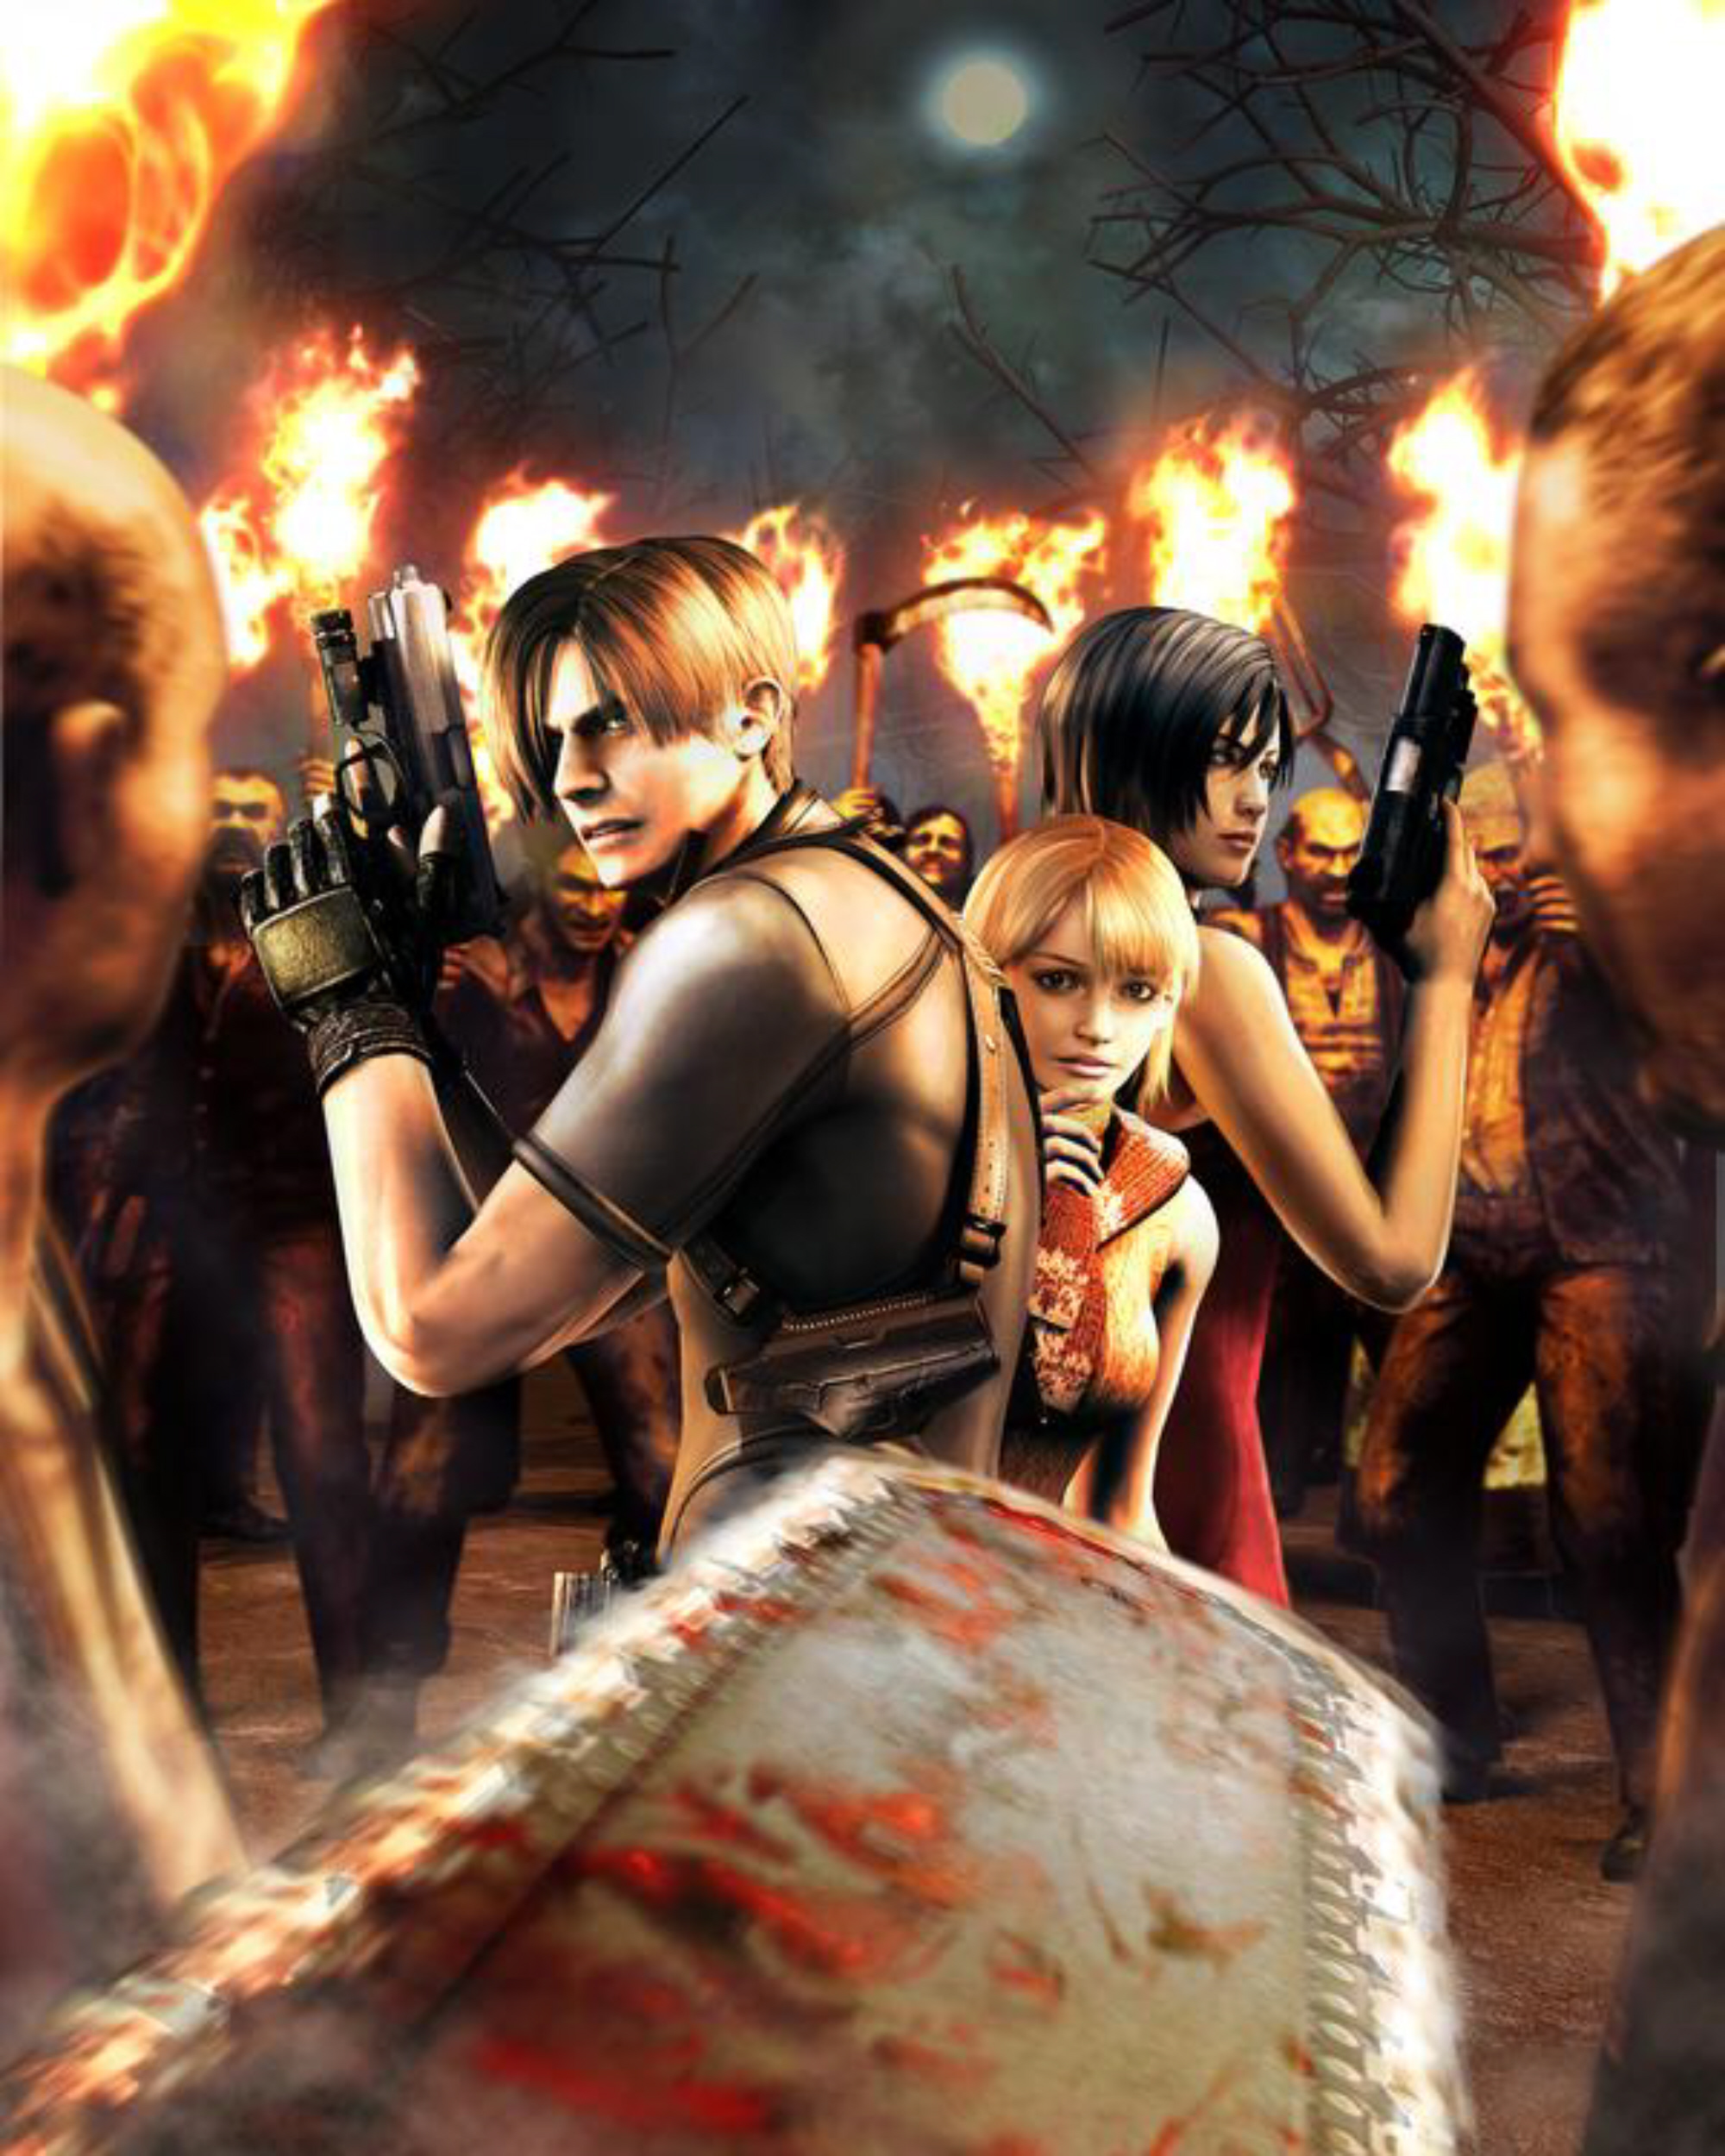 Resident Evil Hd Wallpaper: Zombies Surround Us Resident Evil 4 Artwork